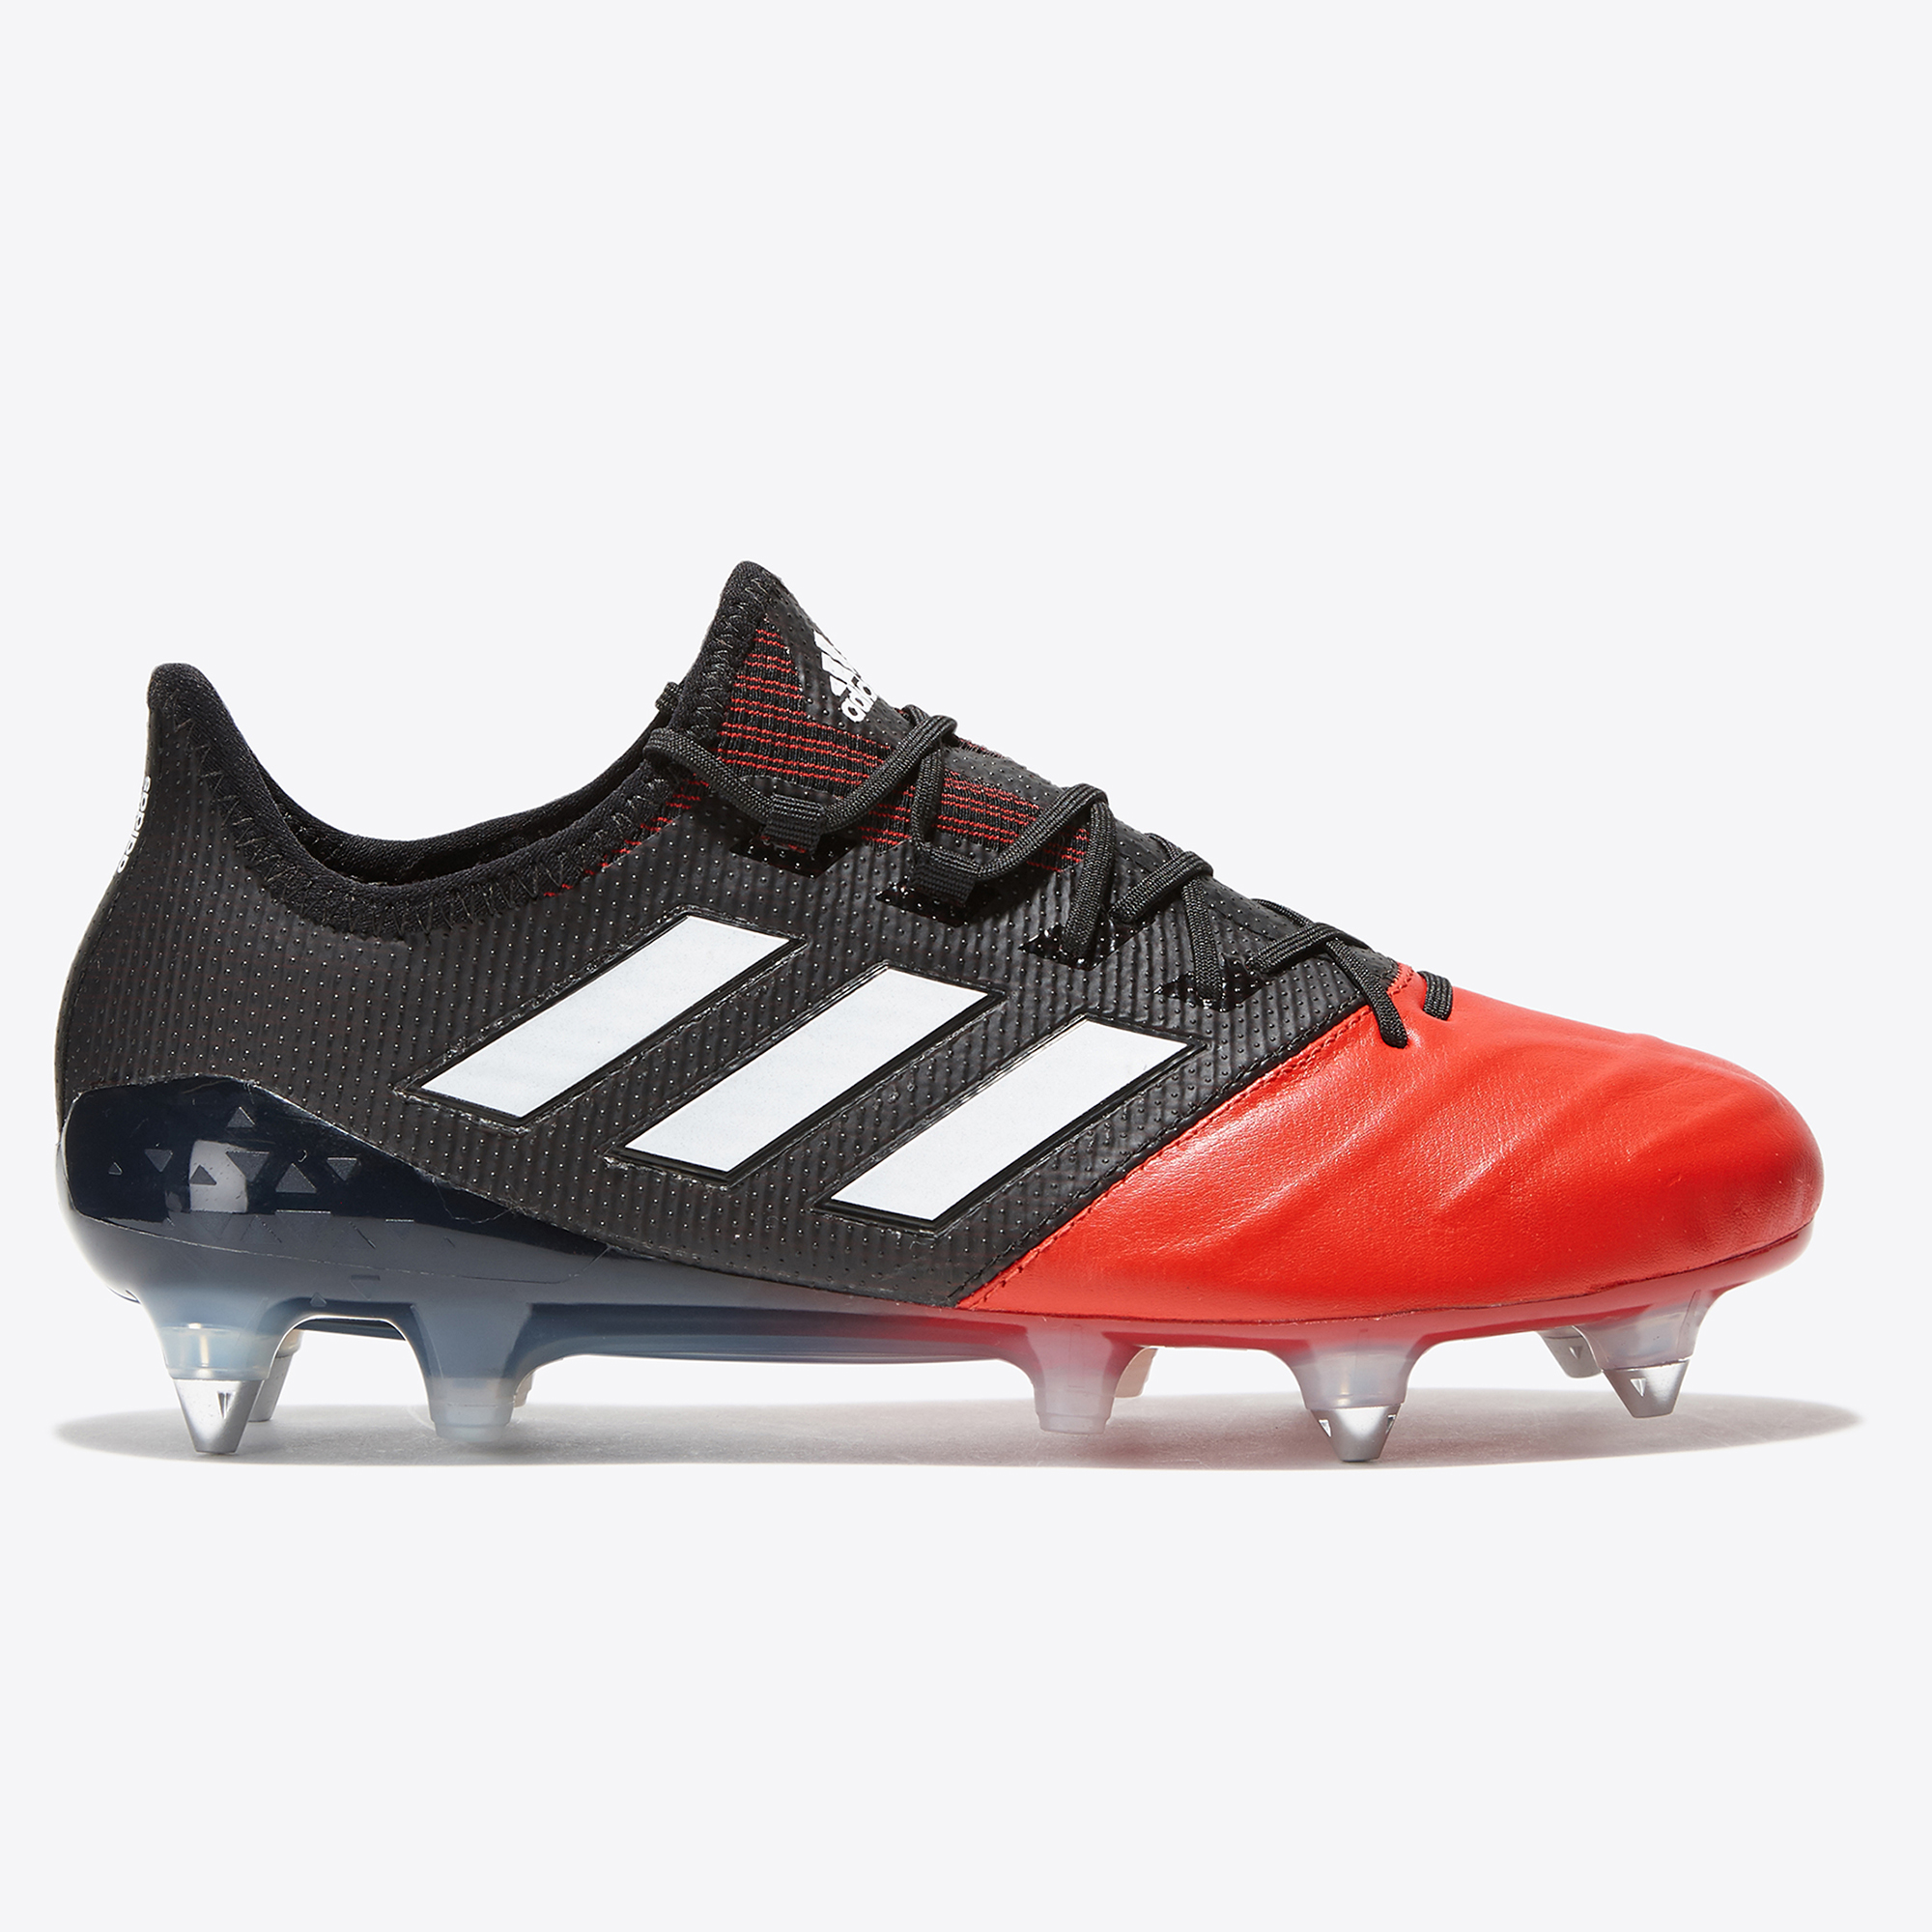 Image of adidas Ace 17.1 Leather Soft Ground Football Boots - Core Black/White/